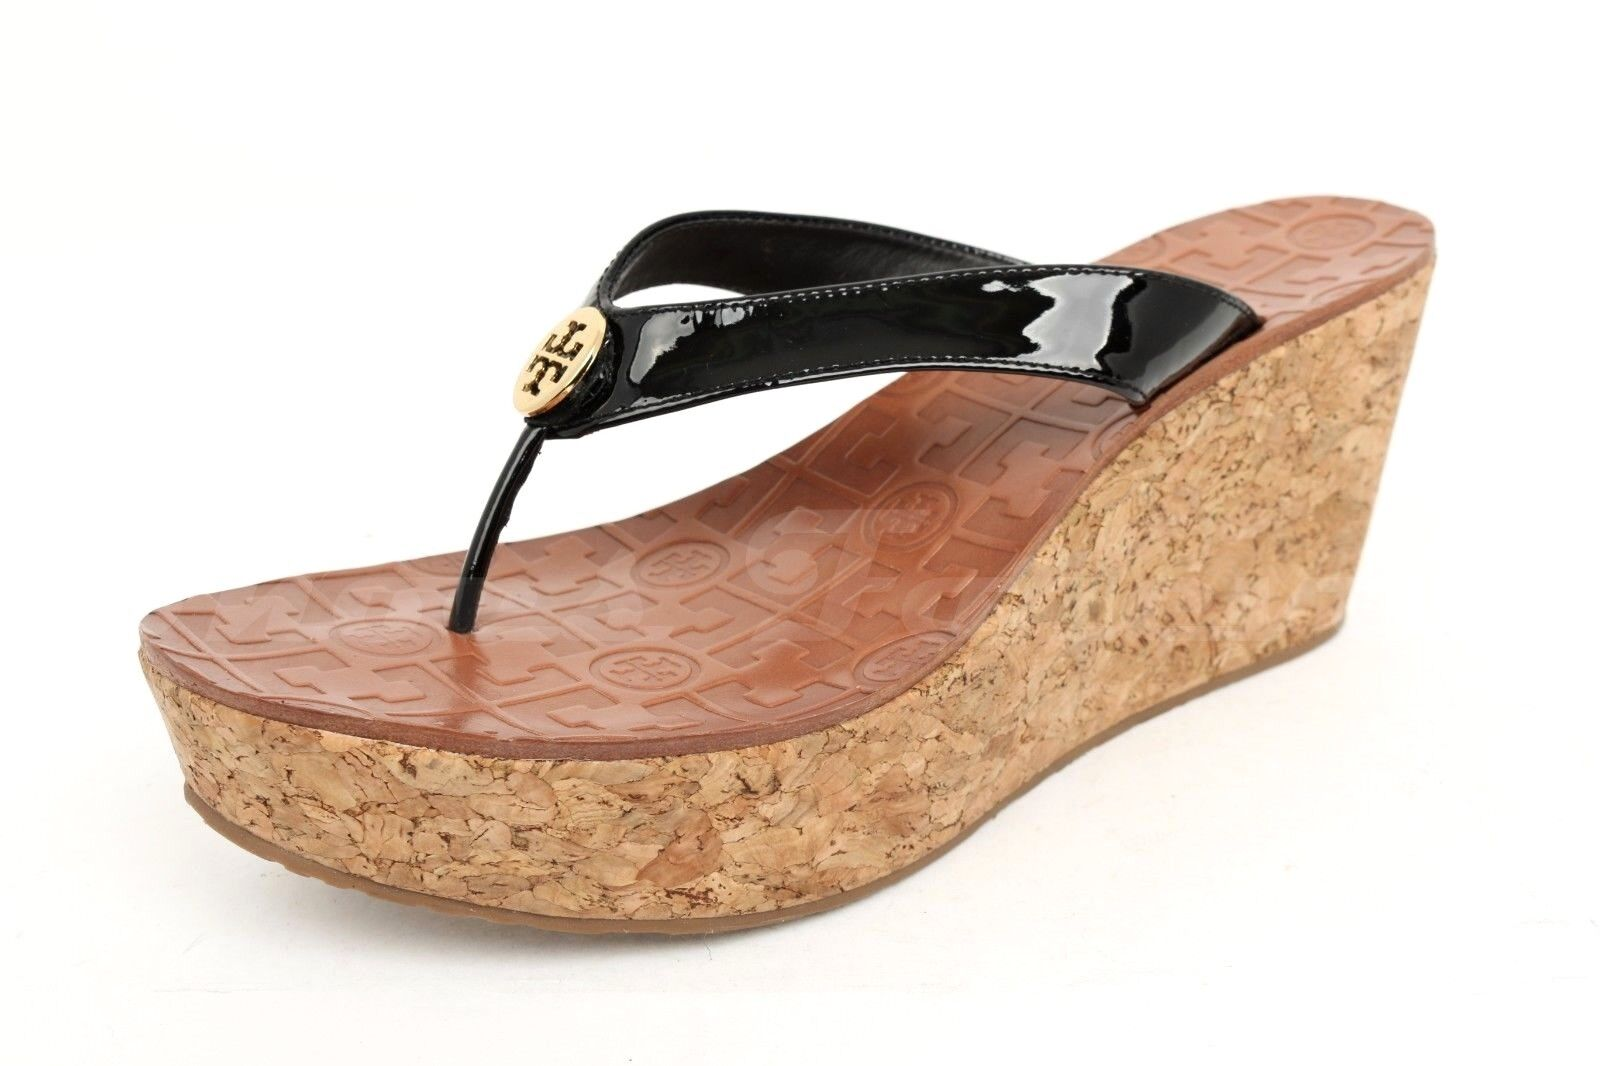 c1aa9cf0f Tory Burch Thora Wedge Womens Black Patent Leather Thong Sandals 10 ...